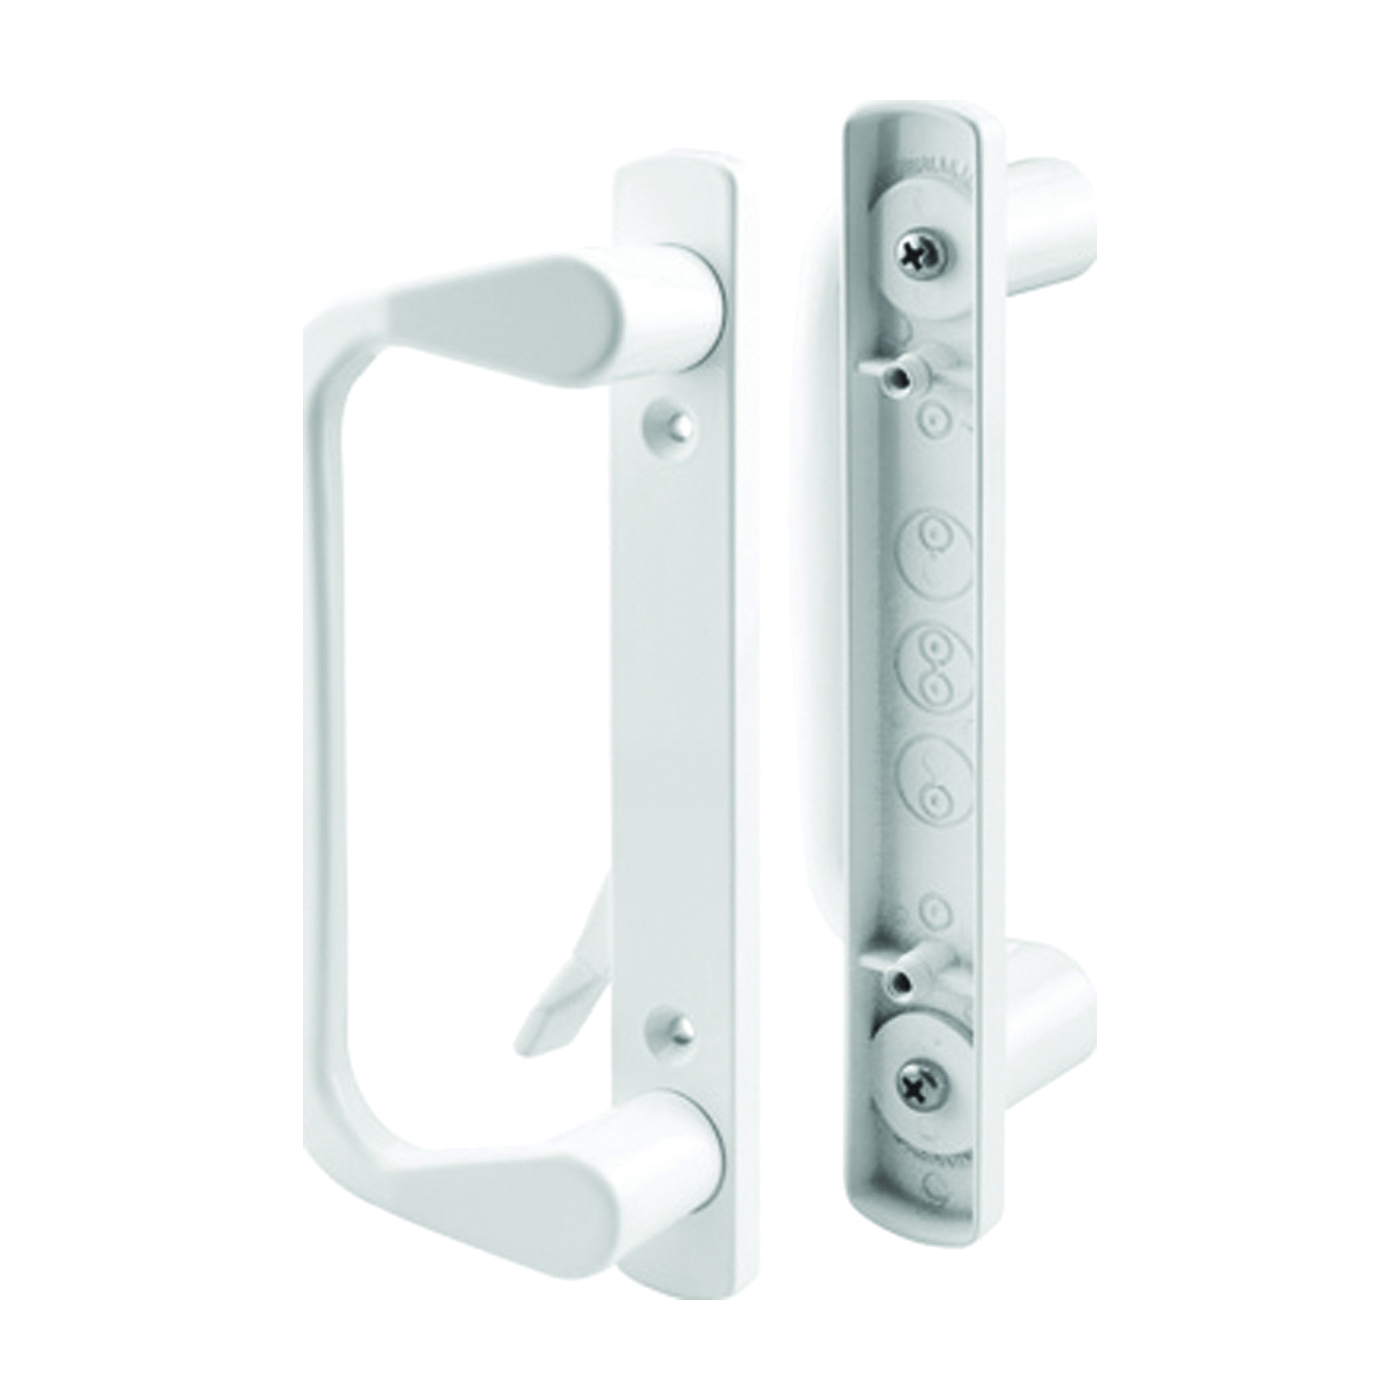 Picture of Prime-Line C 1178 Handle Set, Aluminum, Painted, 1-3/8 to 1-7/8 in Thick Door